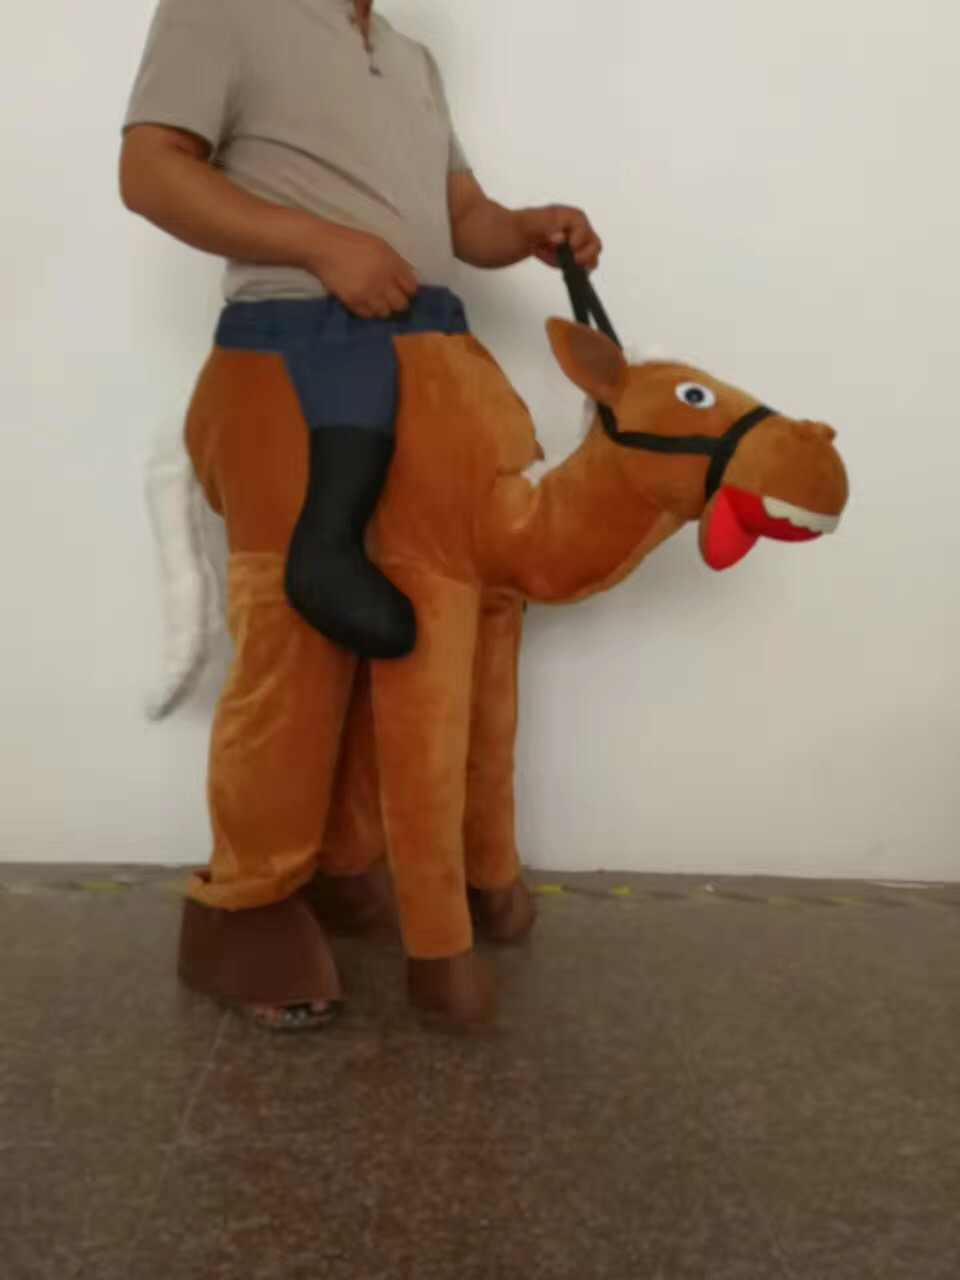 ... Ride A Horse Deluxe Adult Costume Cowboy Cosplay Mascot Costumes New  Year Costume Adult Horse ride ...